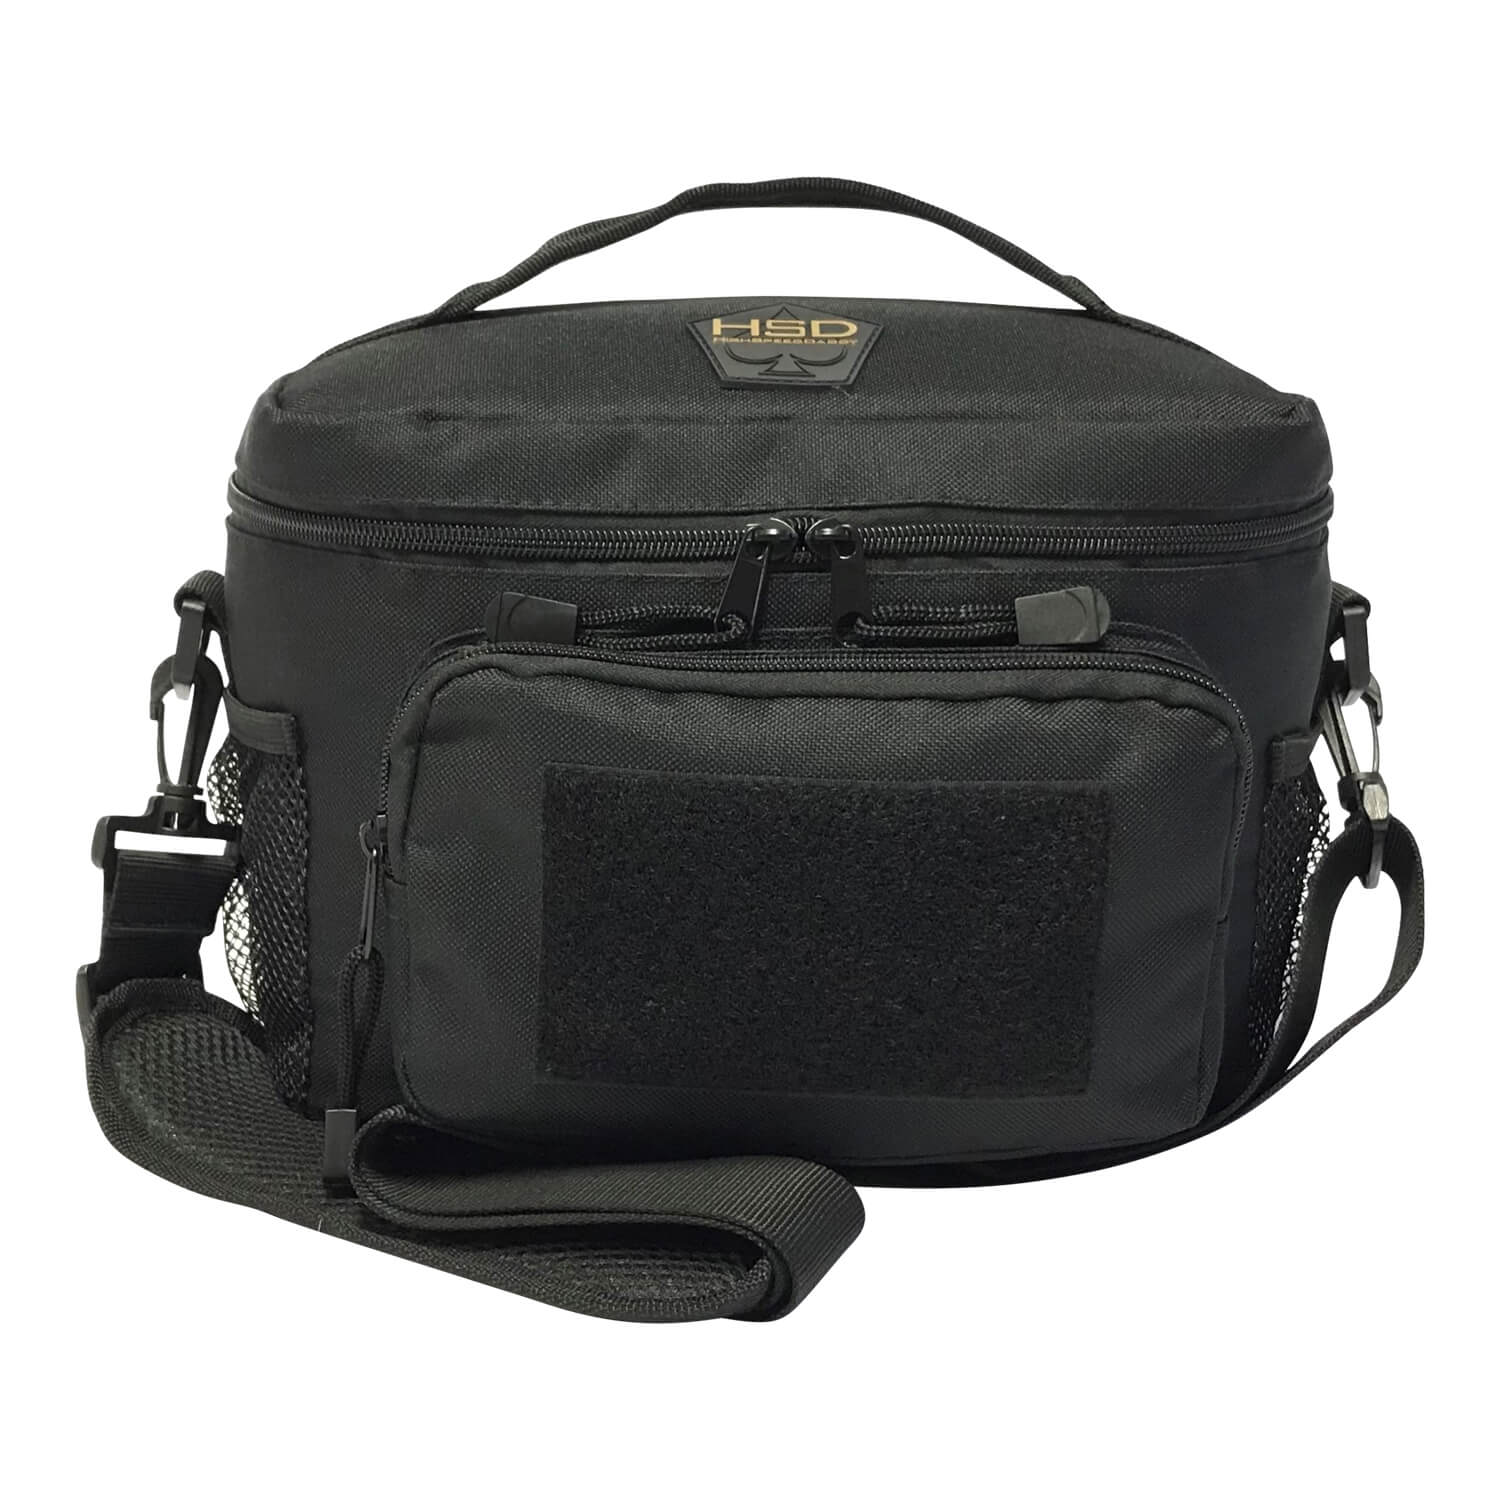 Large Lunch Bags - Multicam - Front